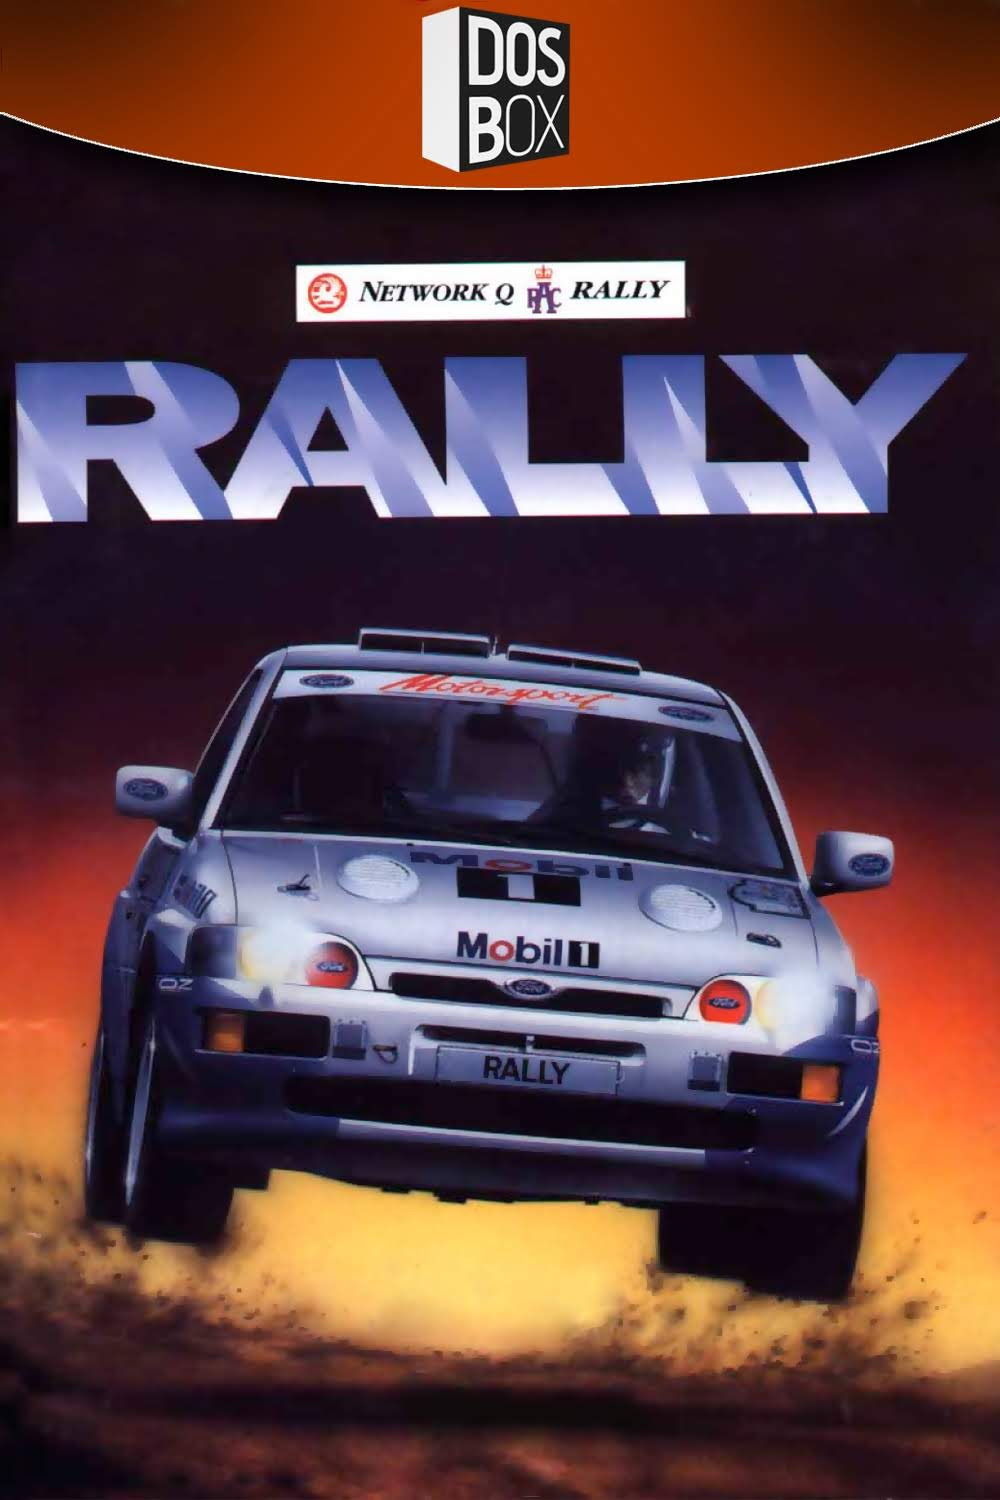 https://collectionchamber.blogspot.com/p/network-q-rac-rally.html